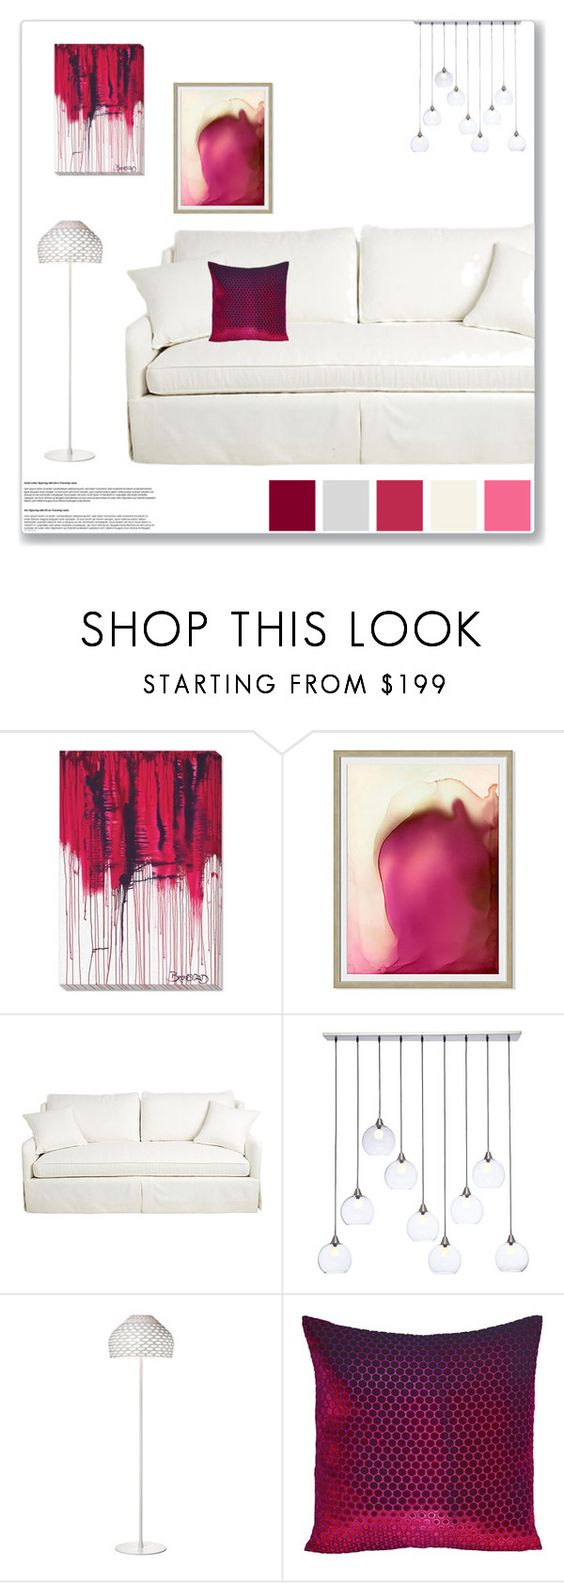 """""""Home set 1 12/15/2015"""" by aneetaalex ❤ liked on Polyvore featuring interior, interiors, interior design, home, home decor, interior decorating, CB2, Flos and Kevin O'Brien"""